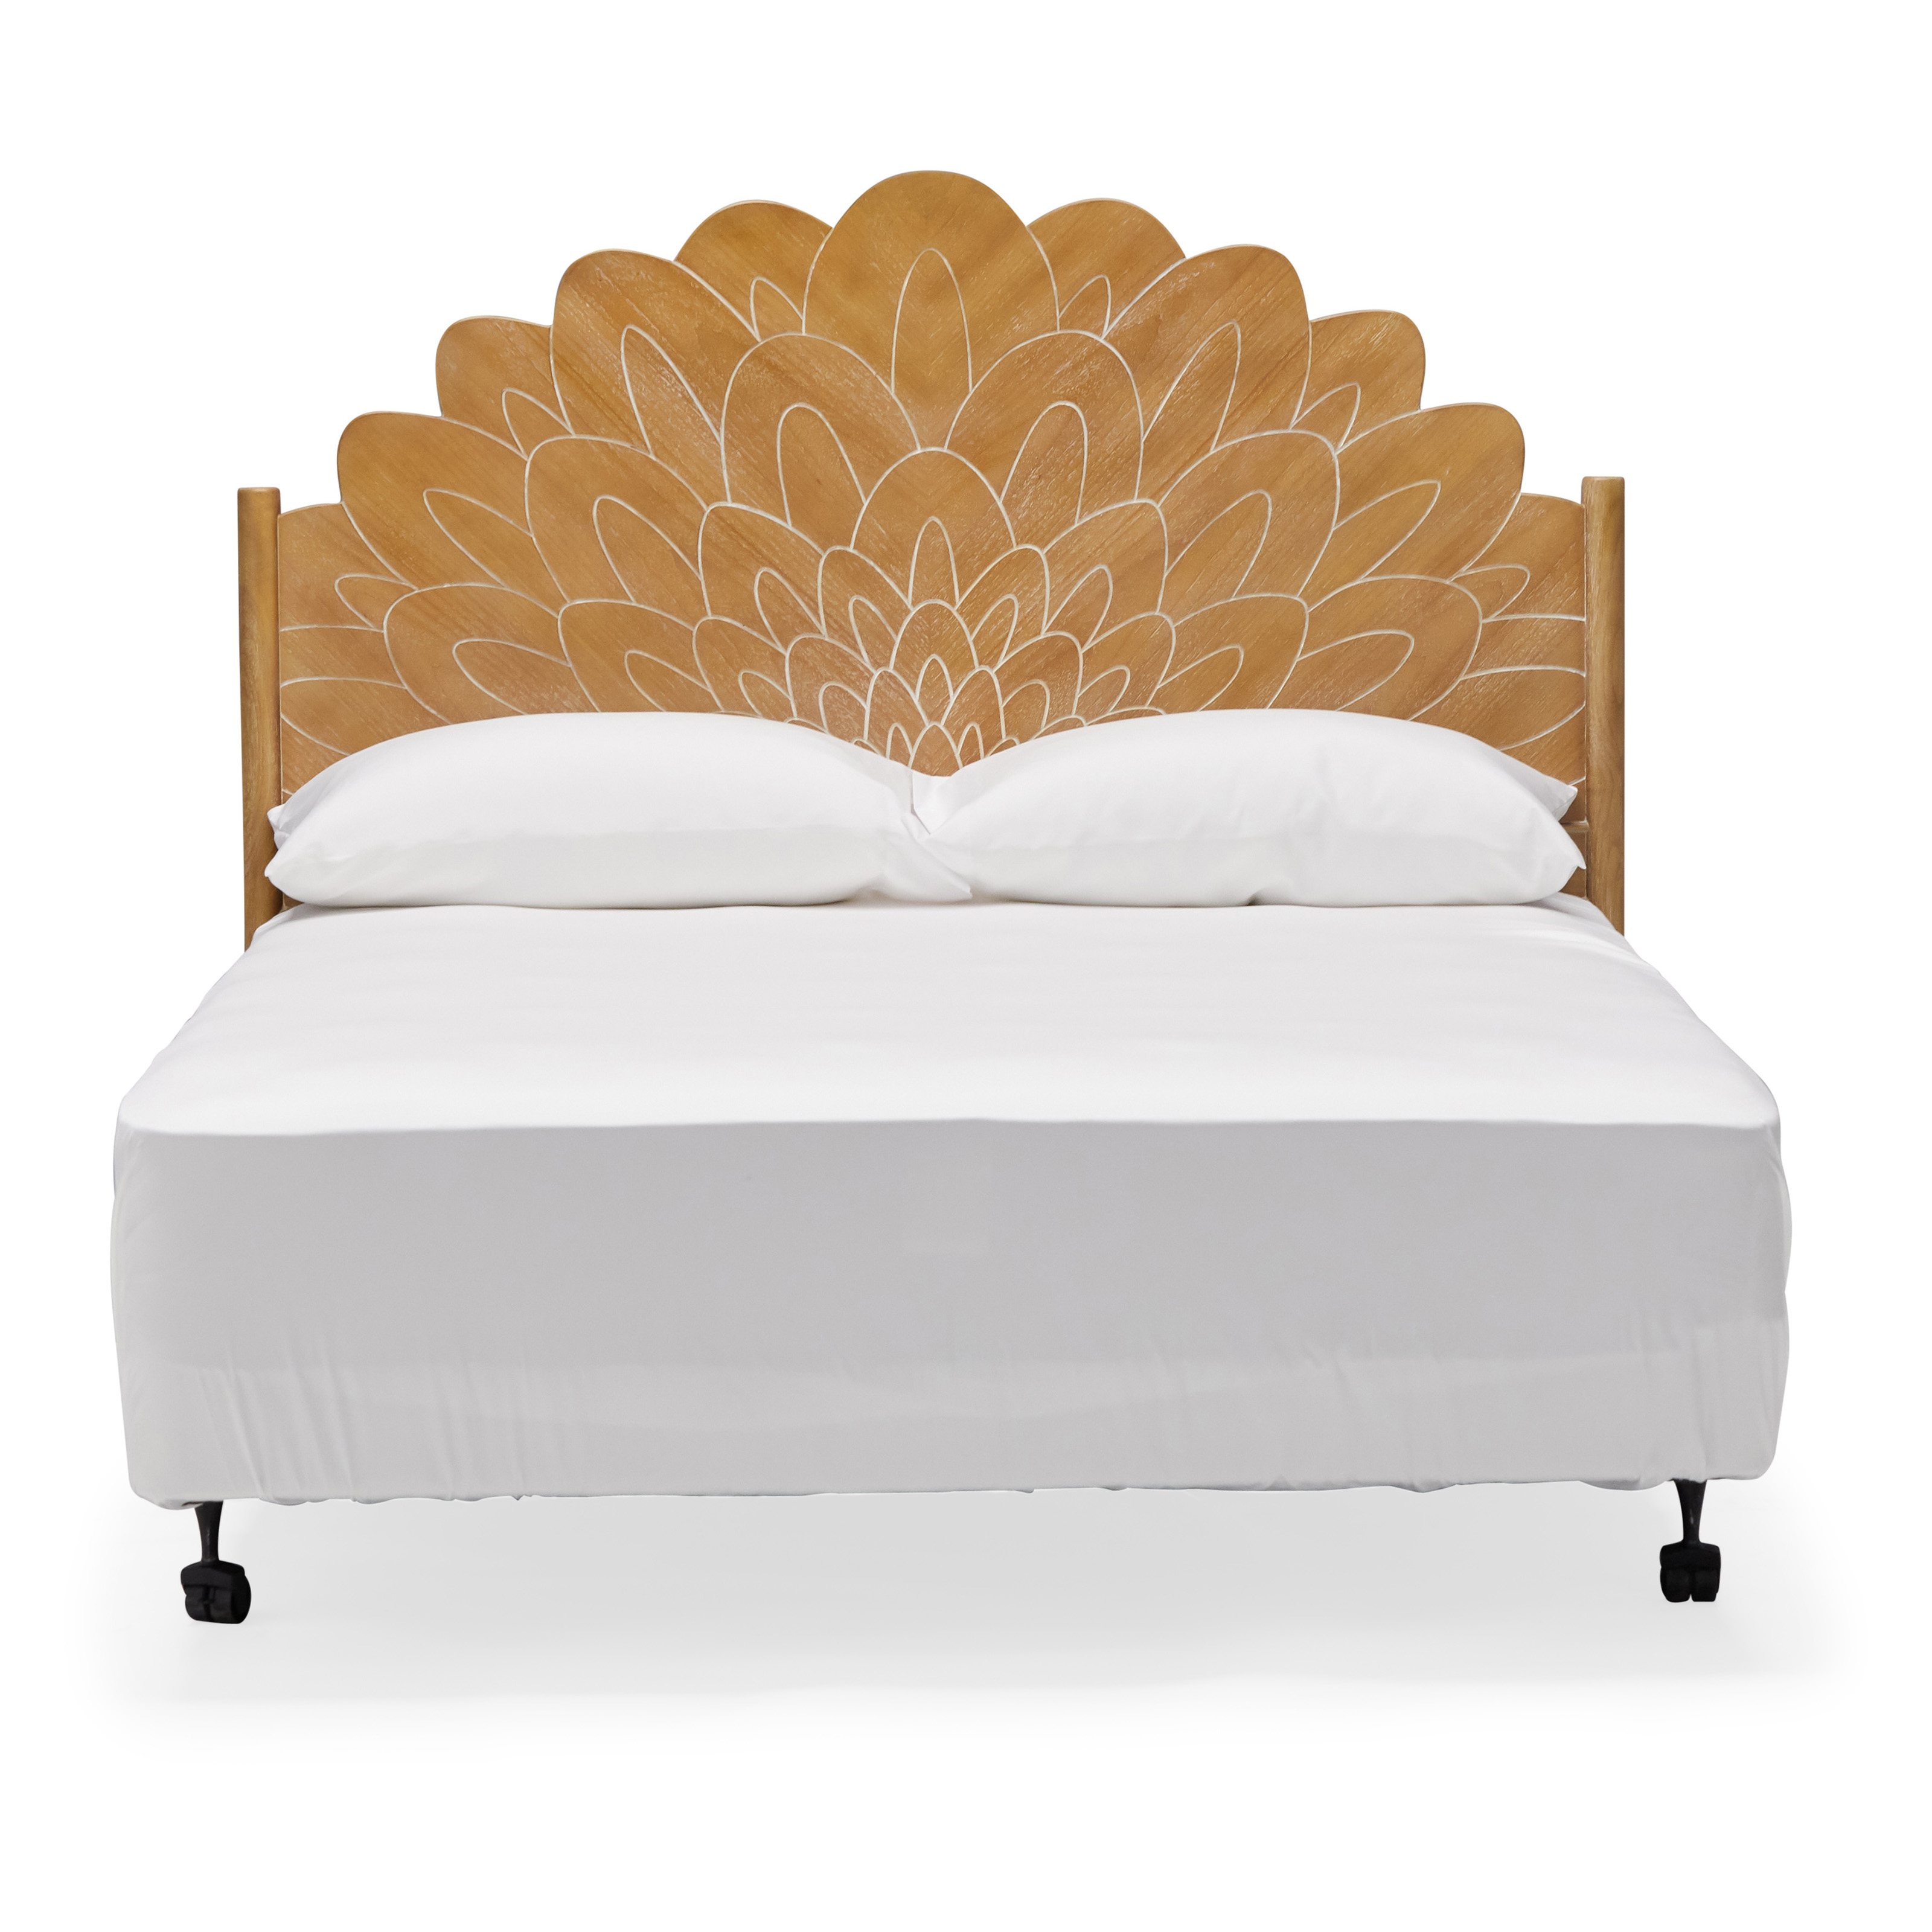 Bohemian Carved Wood Headboard By Drew Barrymore Flower Home Walmart Com Walmart Com